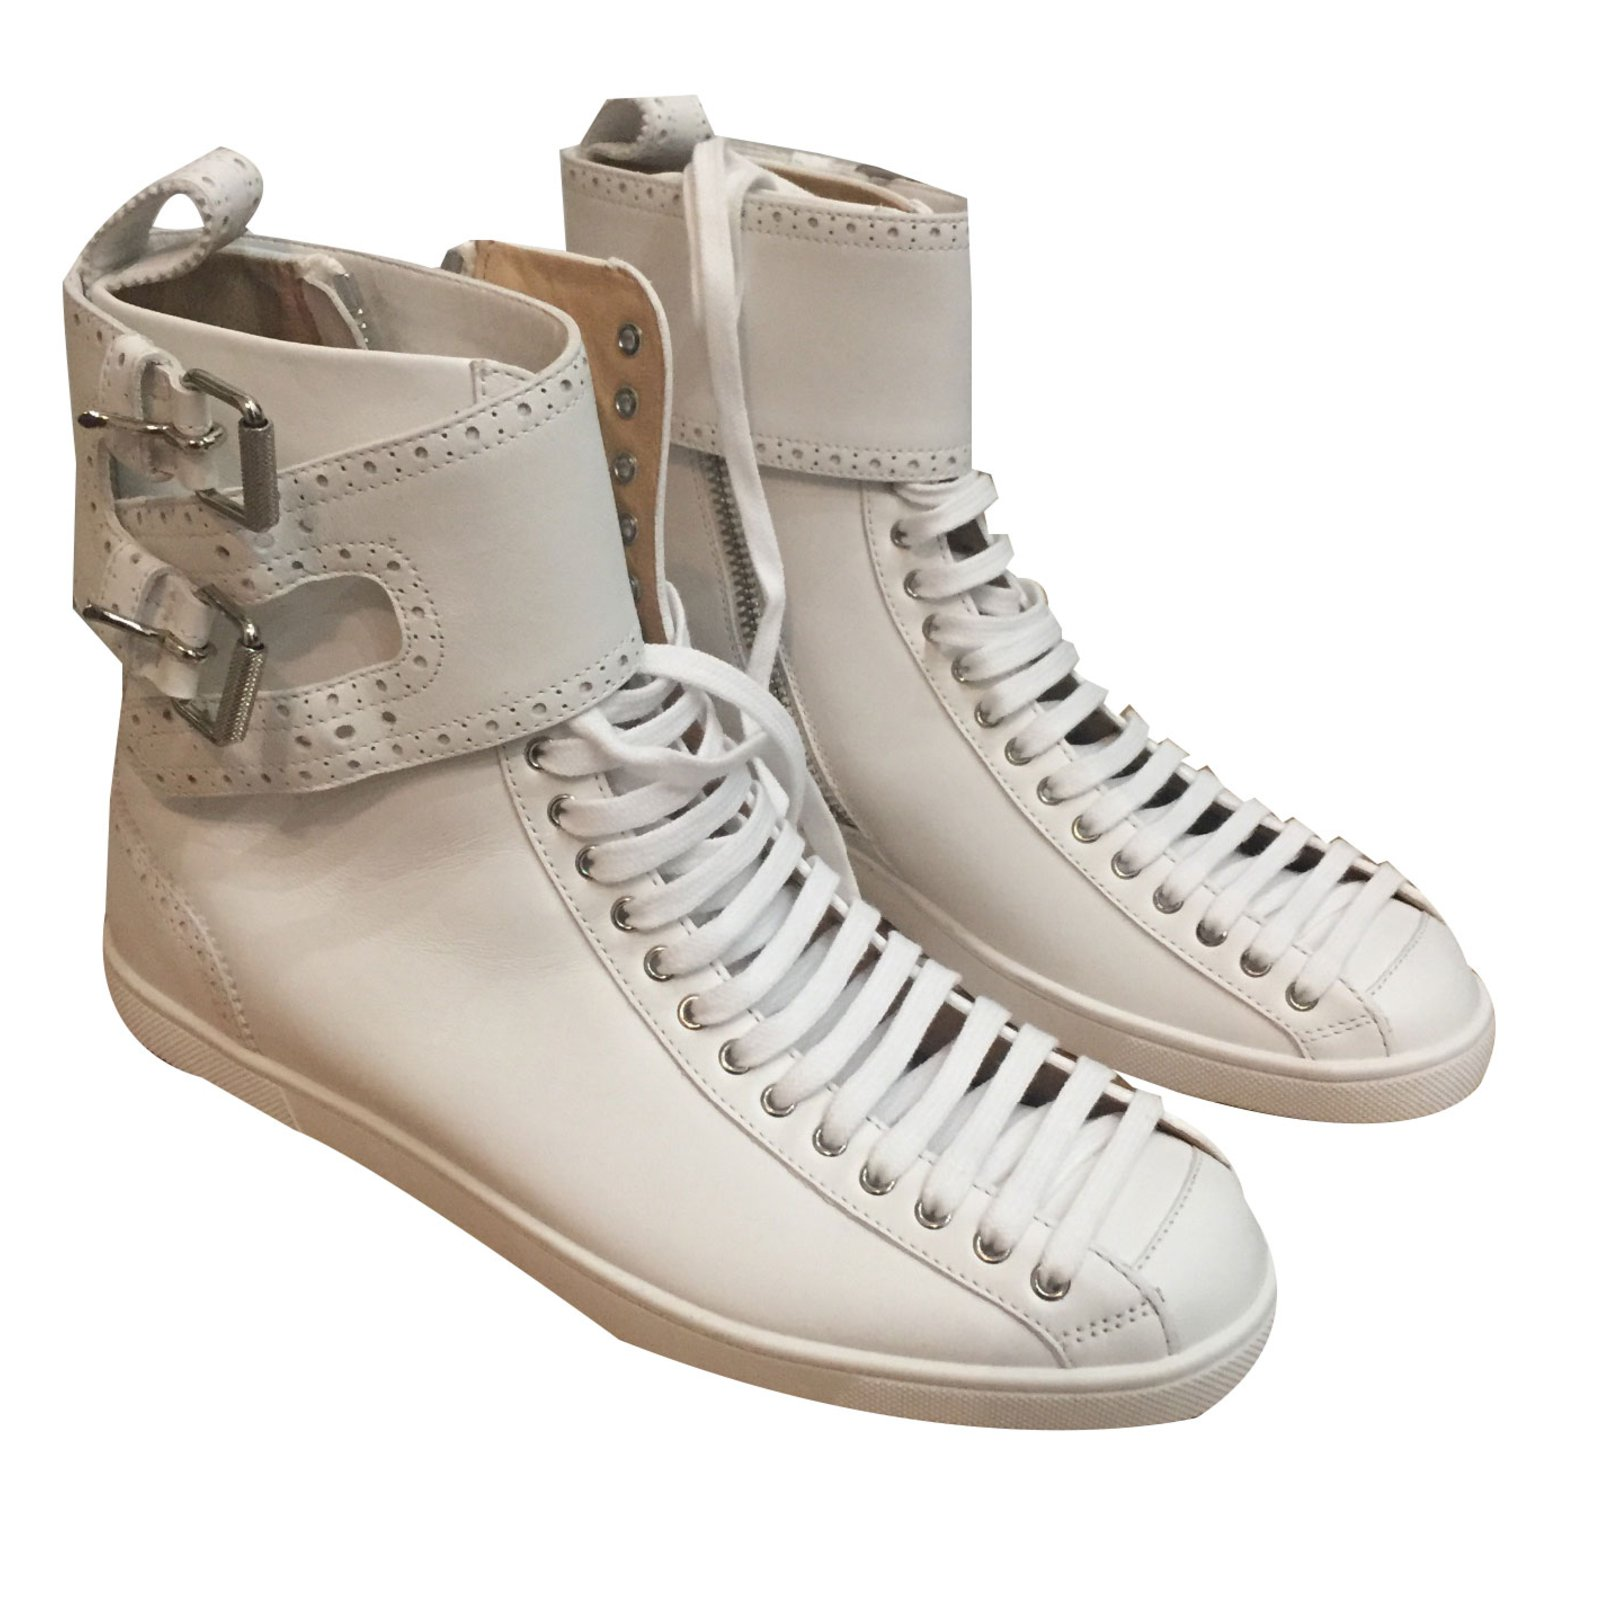 c4230b75cbc3 ... cheap christian louboutin sneakers sneakers leather white ref.32135  795c4 06c74